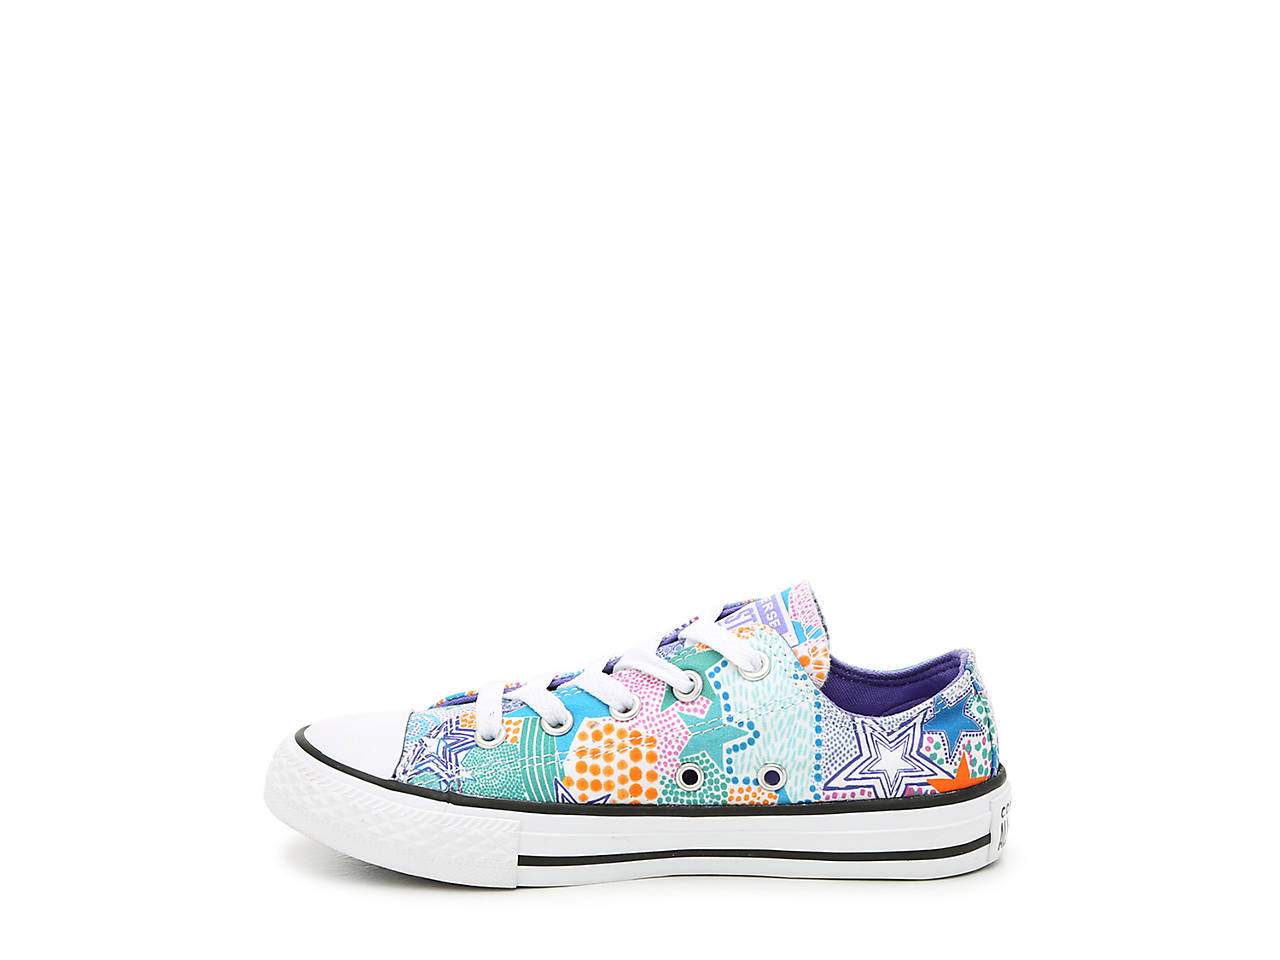 275574b9 Converse Chuck Taylor All Star Street Mosaic Toddler & Youth Sneaker ...